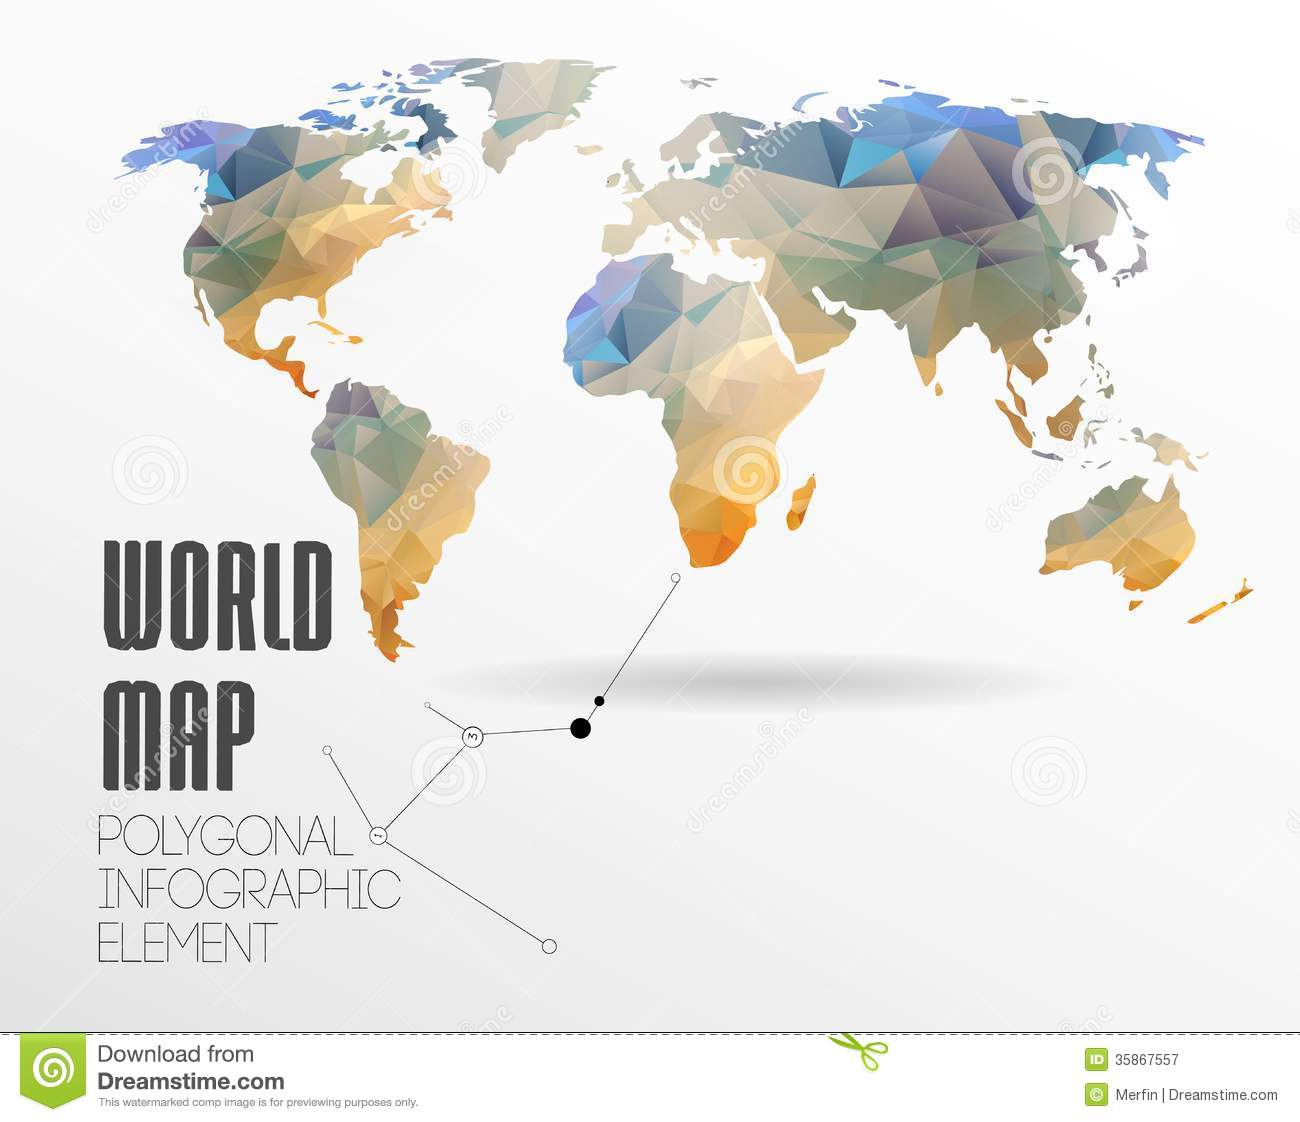 World map and information graphics stock vector illustration of world map and information graphics continent planet gumiabroncs Gallery